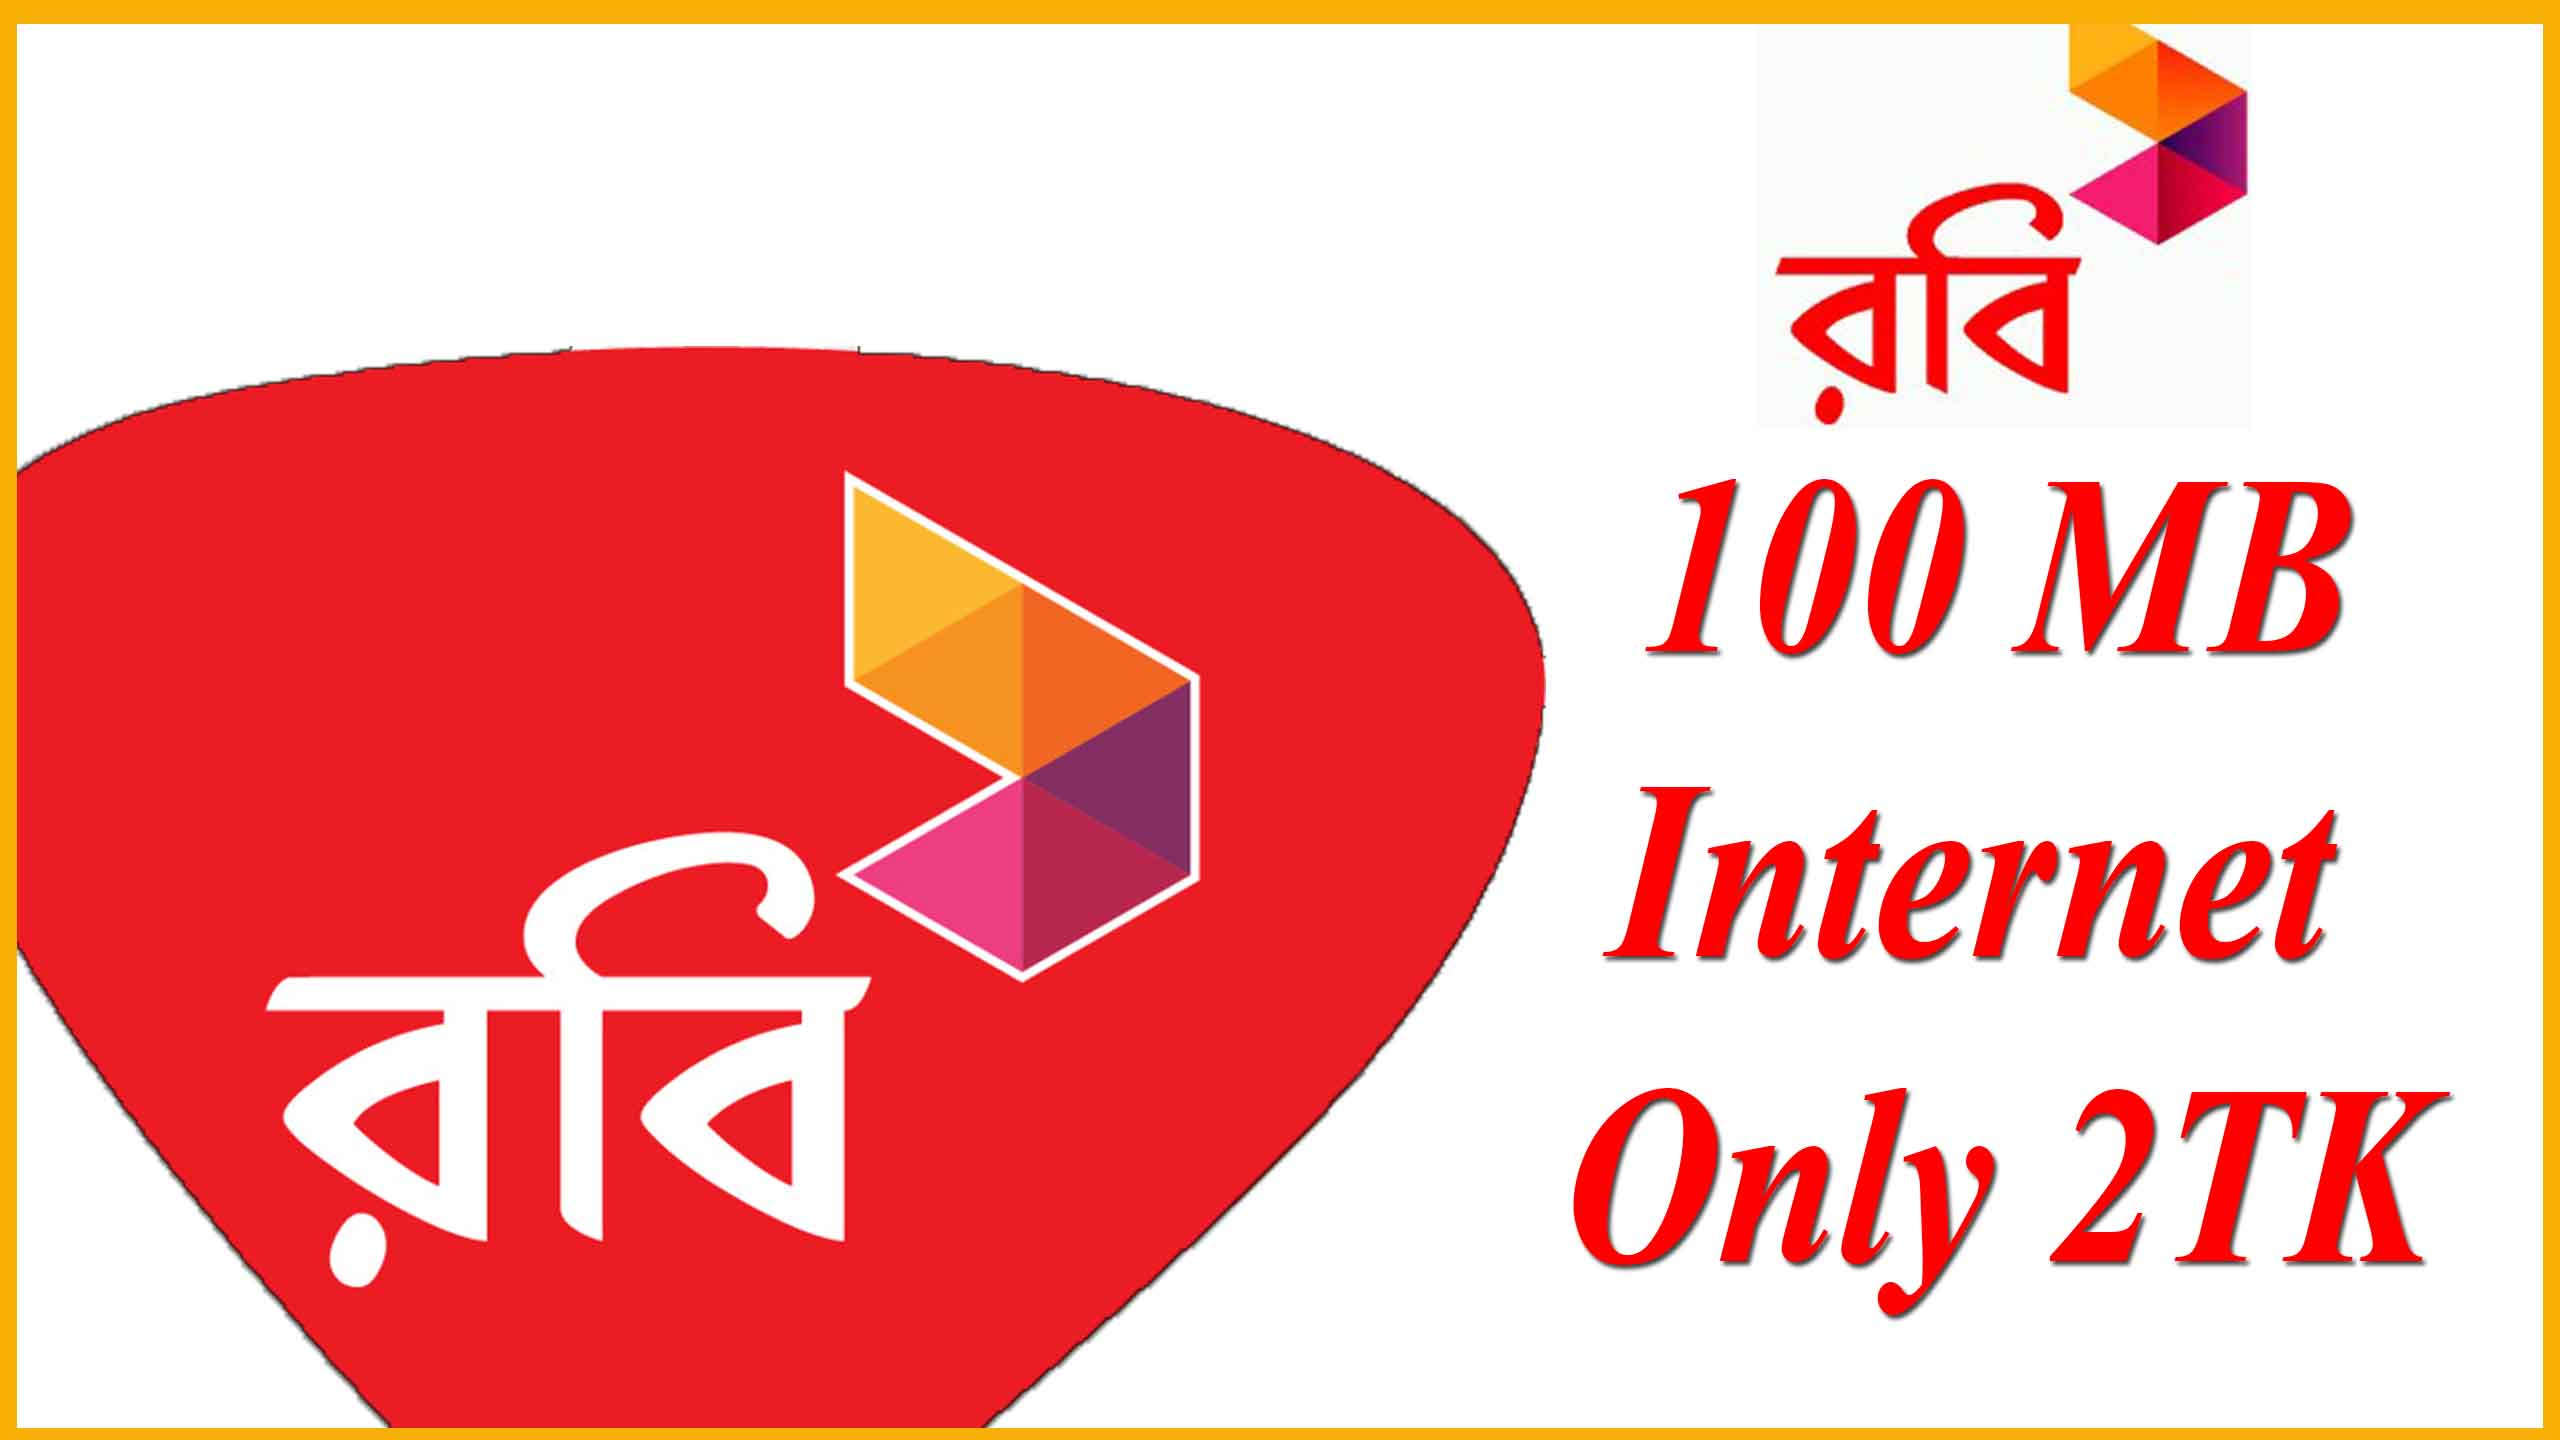 robi 100mb internet 2tk offer